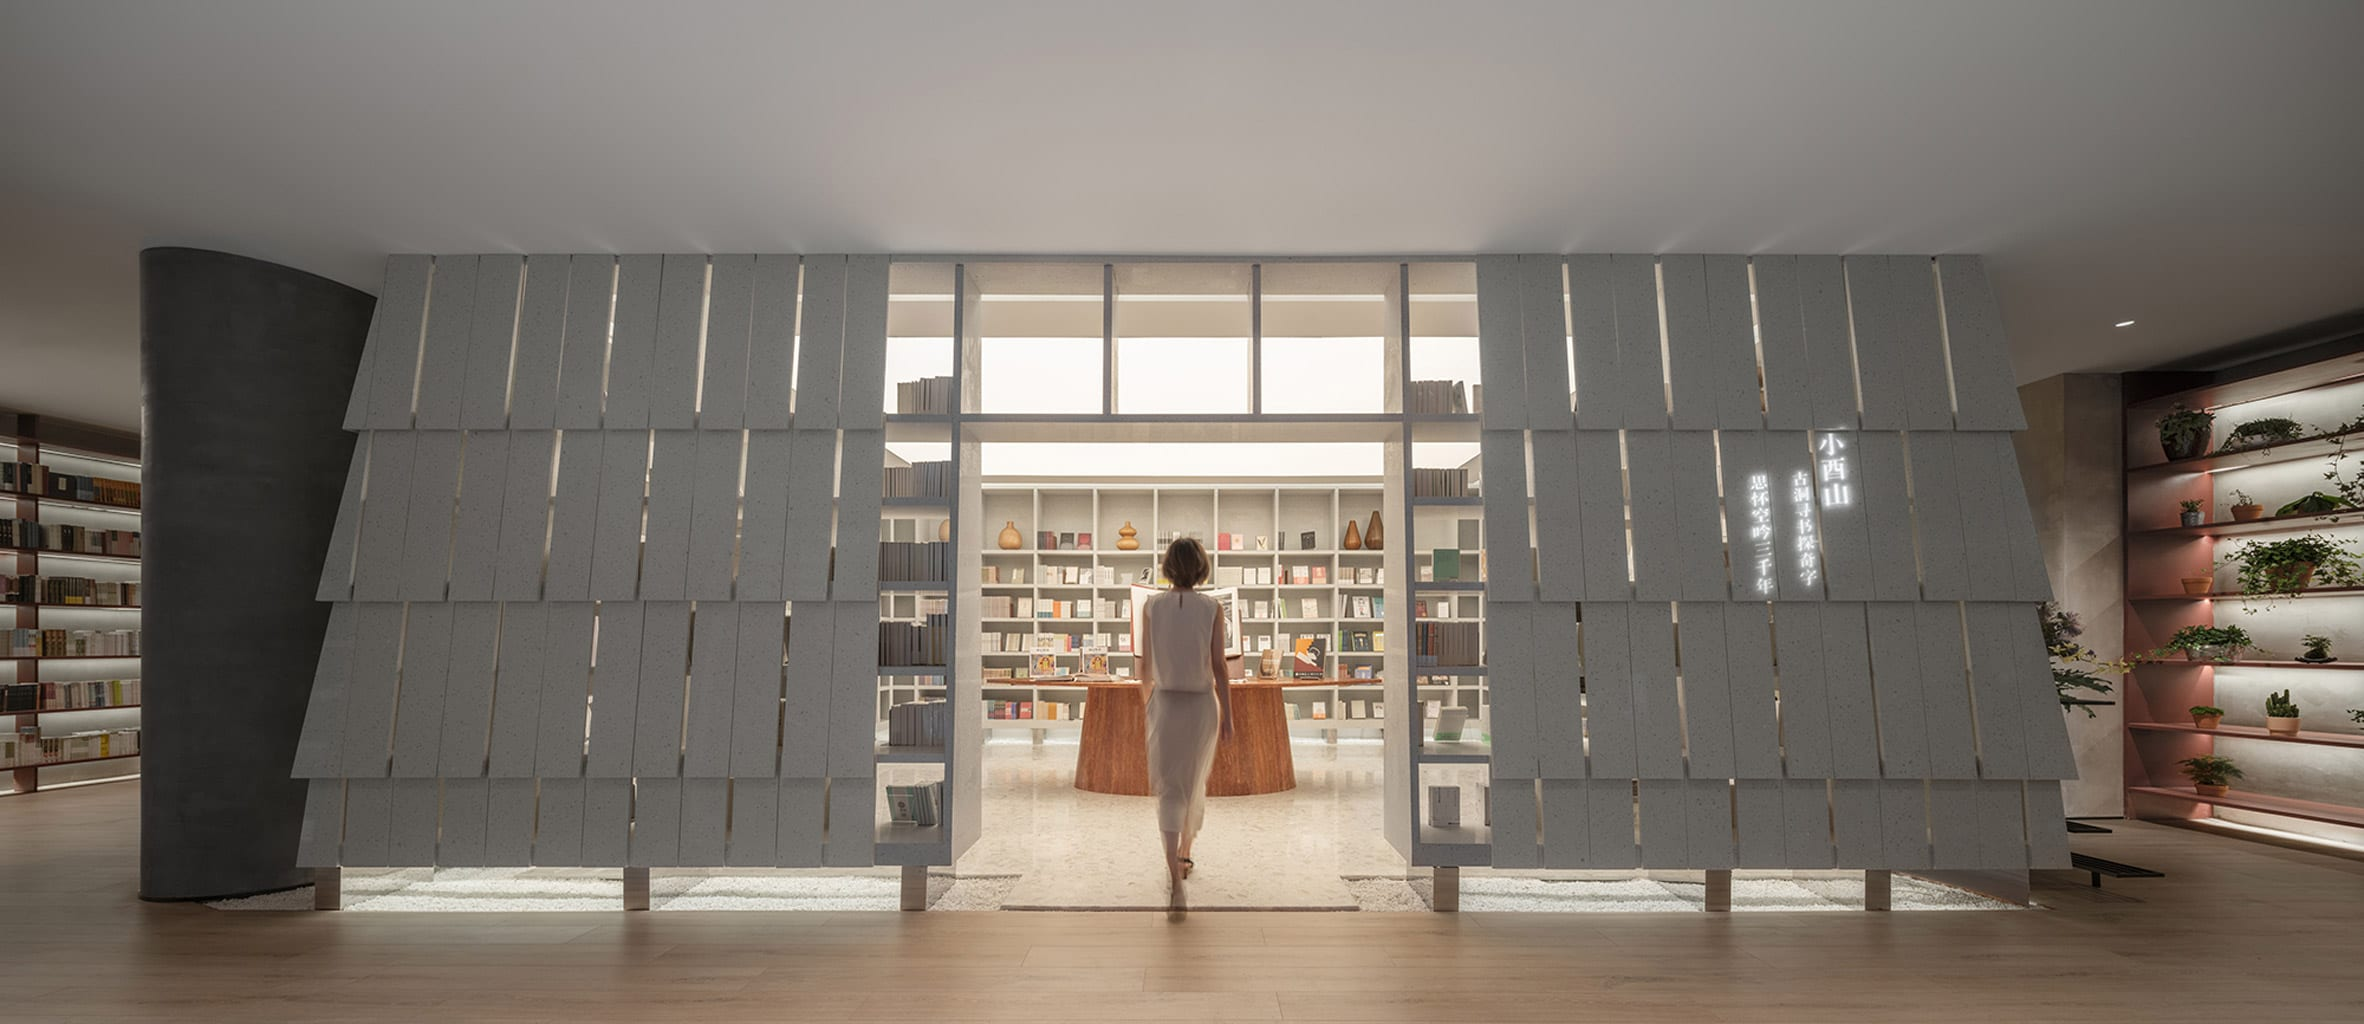 Wutopia Lab installed a bookshelf formed from white panels